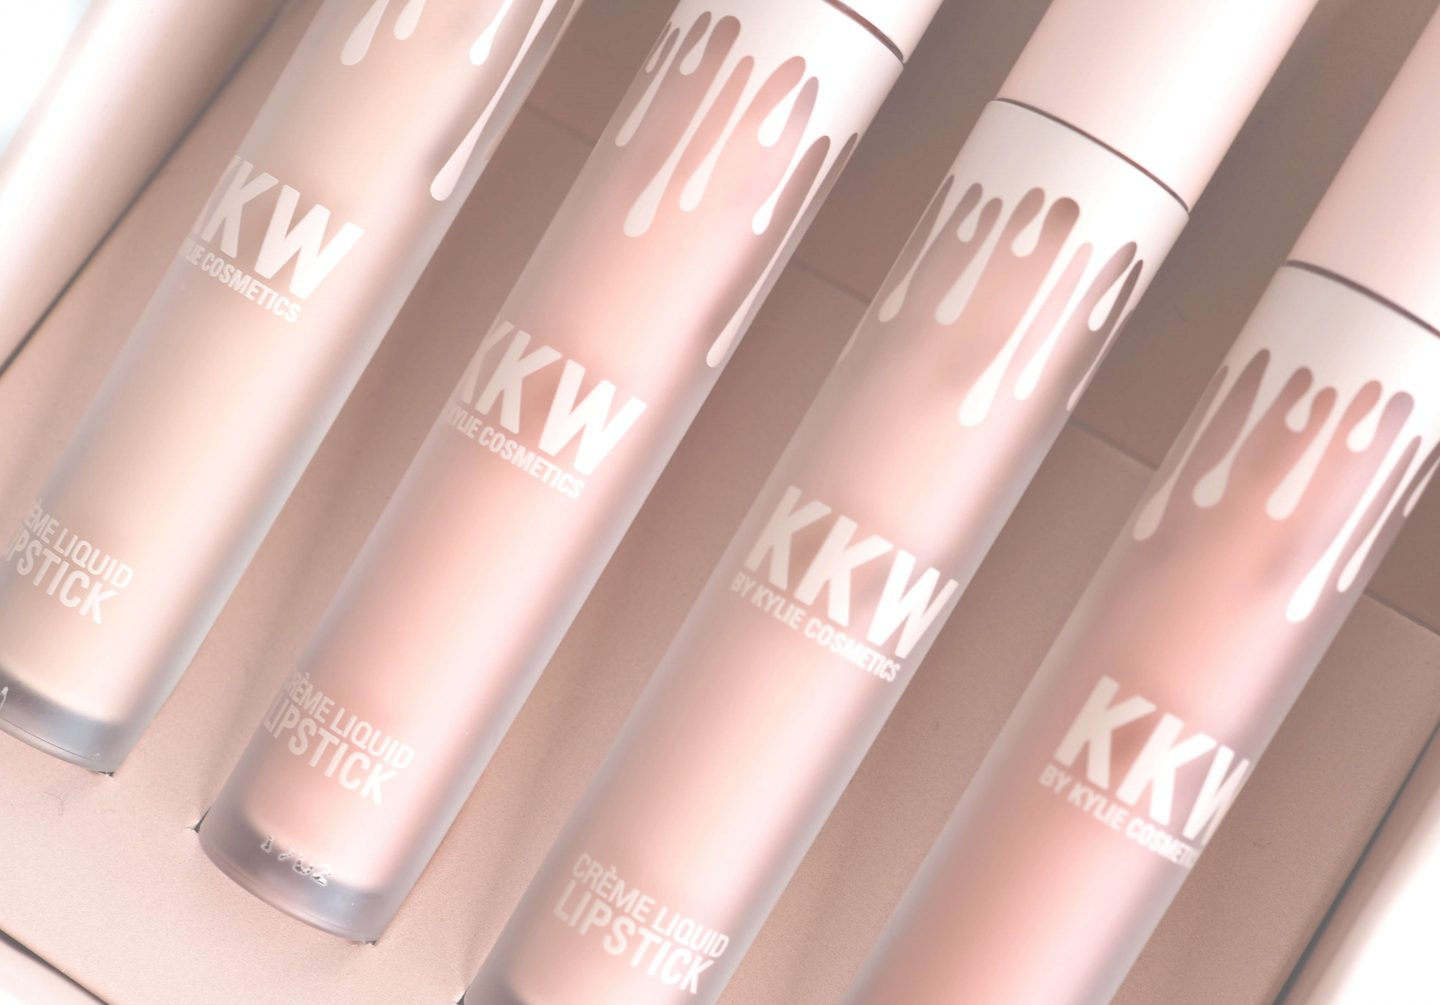 Test KKW by KYLIE COSMETICS Crème Liquid Lipstick